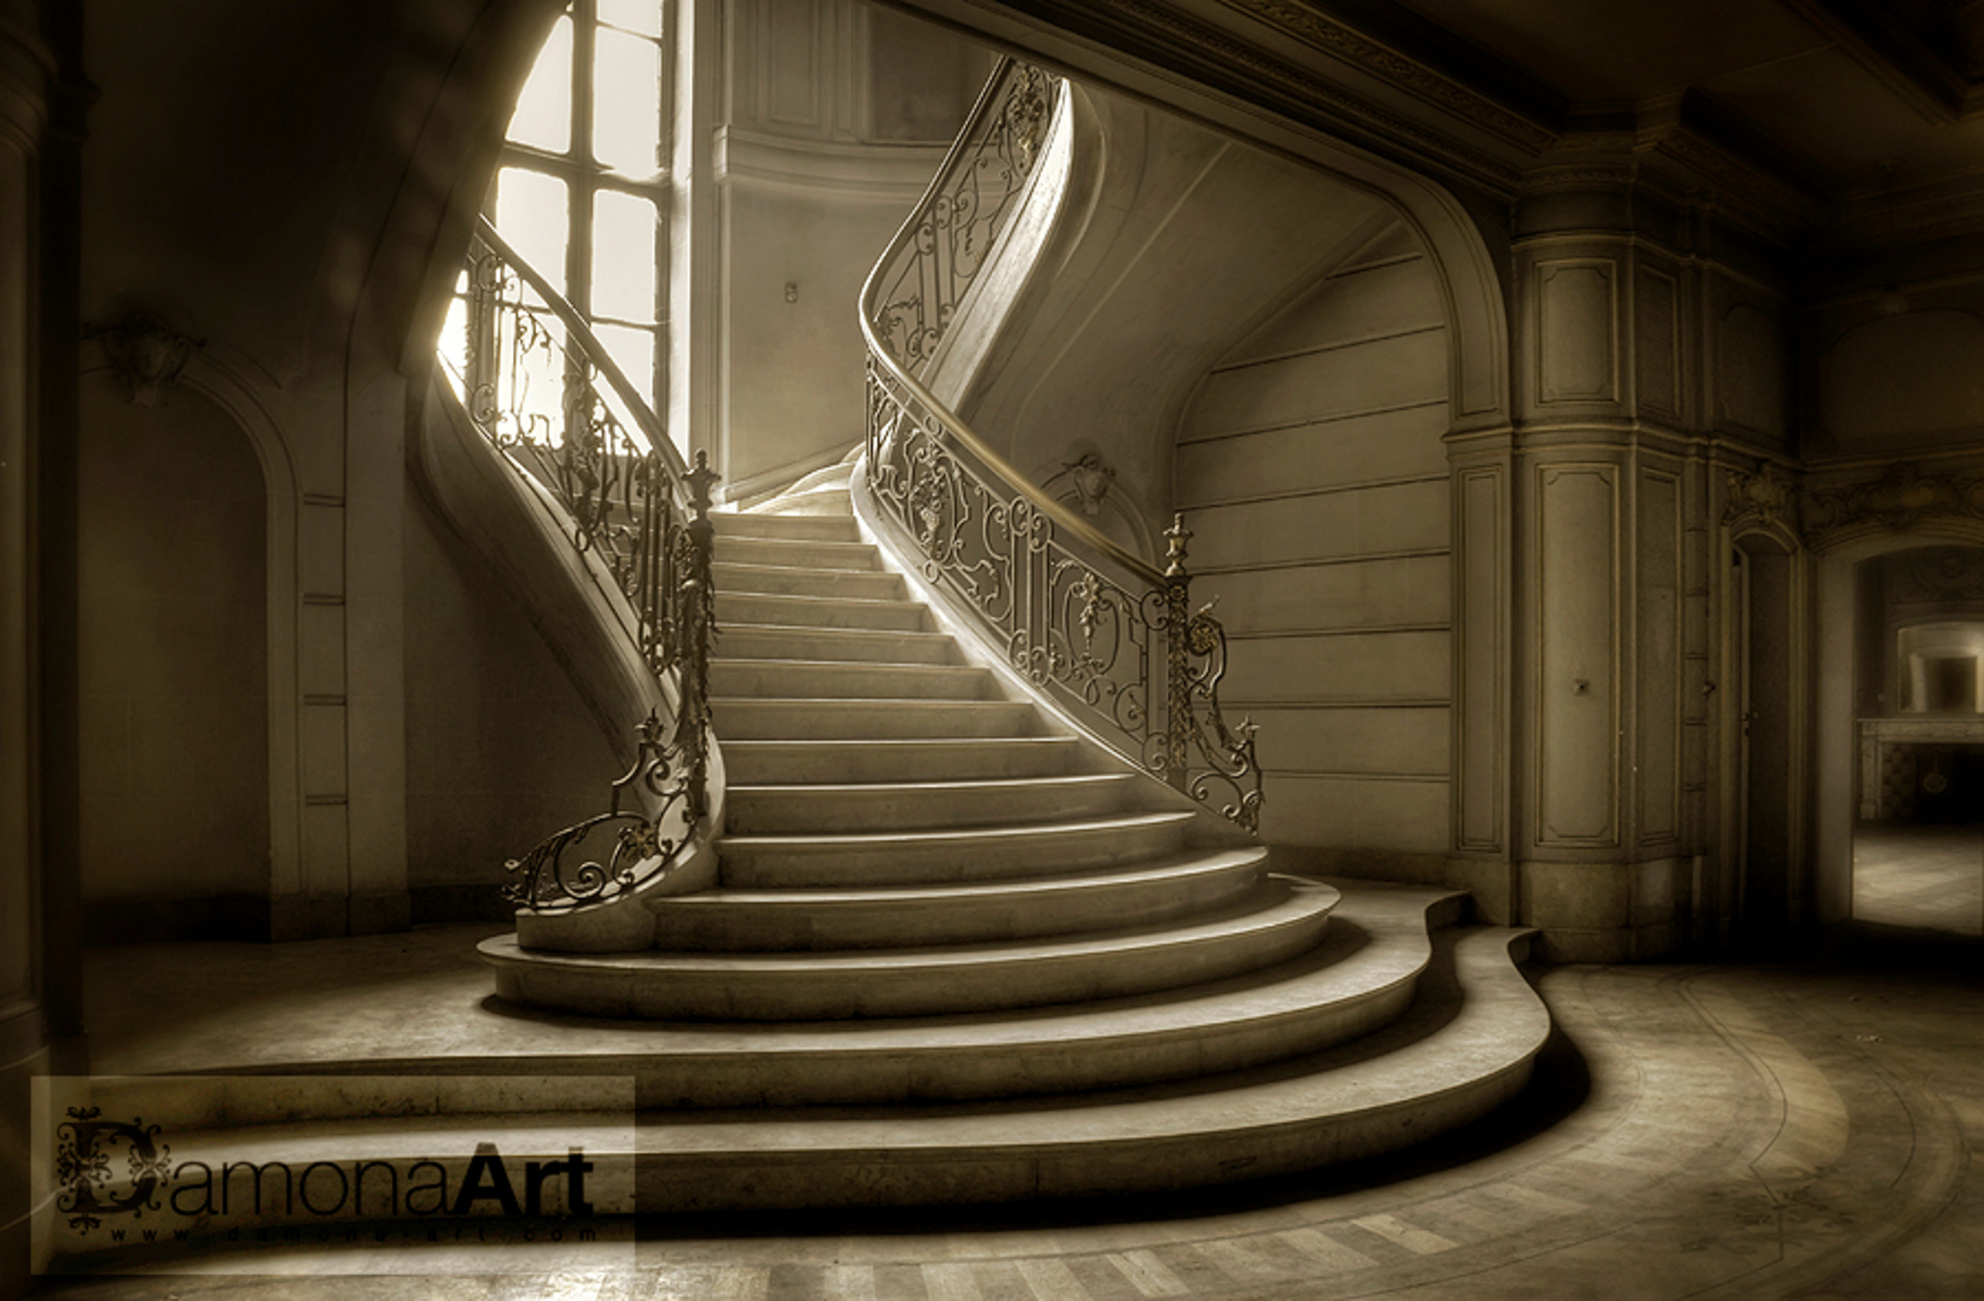 """Memories - A forgotten and abandoned Chateau Lurking on a domain somewhere in Belgium. The history of this Chateau is going back to the year 1913. Abandoned sin - foto door damona-art op 13-02-2010 - deze foto bevat: nikon, light, lost, raw, hdr, stairs, urbex, chateau, abandoned, belgium, decay, rosita, d300, """"Du Loup"""", Damona"""